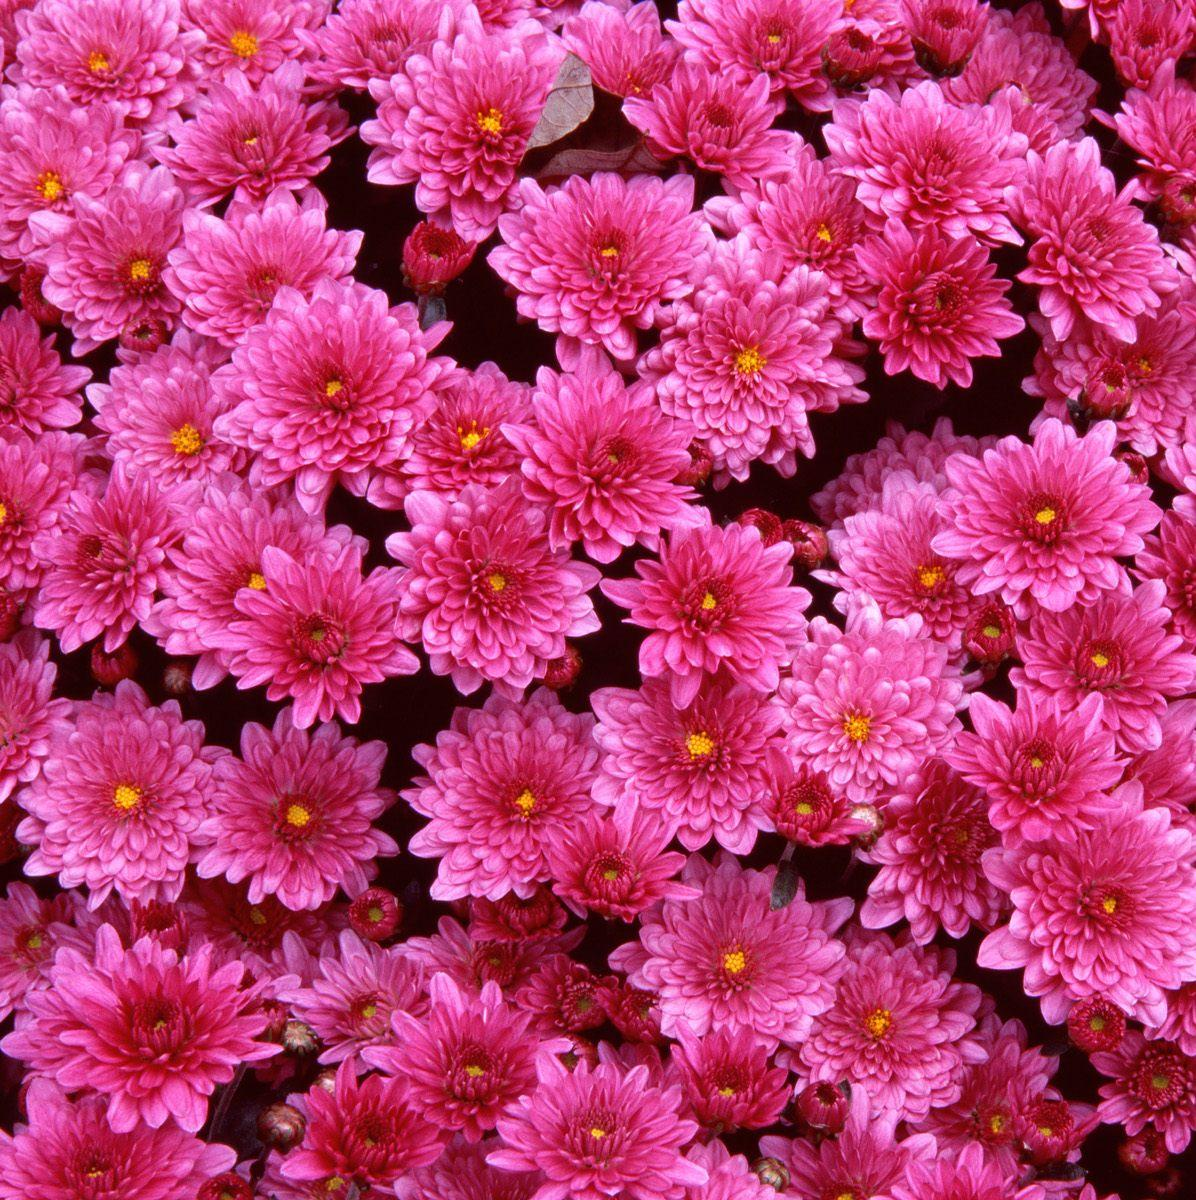 Download wallpapers free beautiful flowers wallpaper - Beautiful flower images wallpapers ...